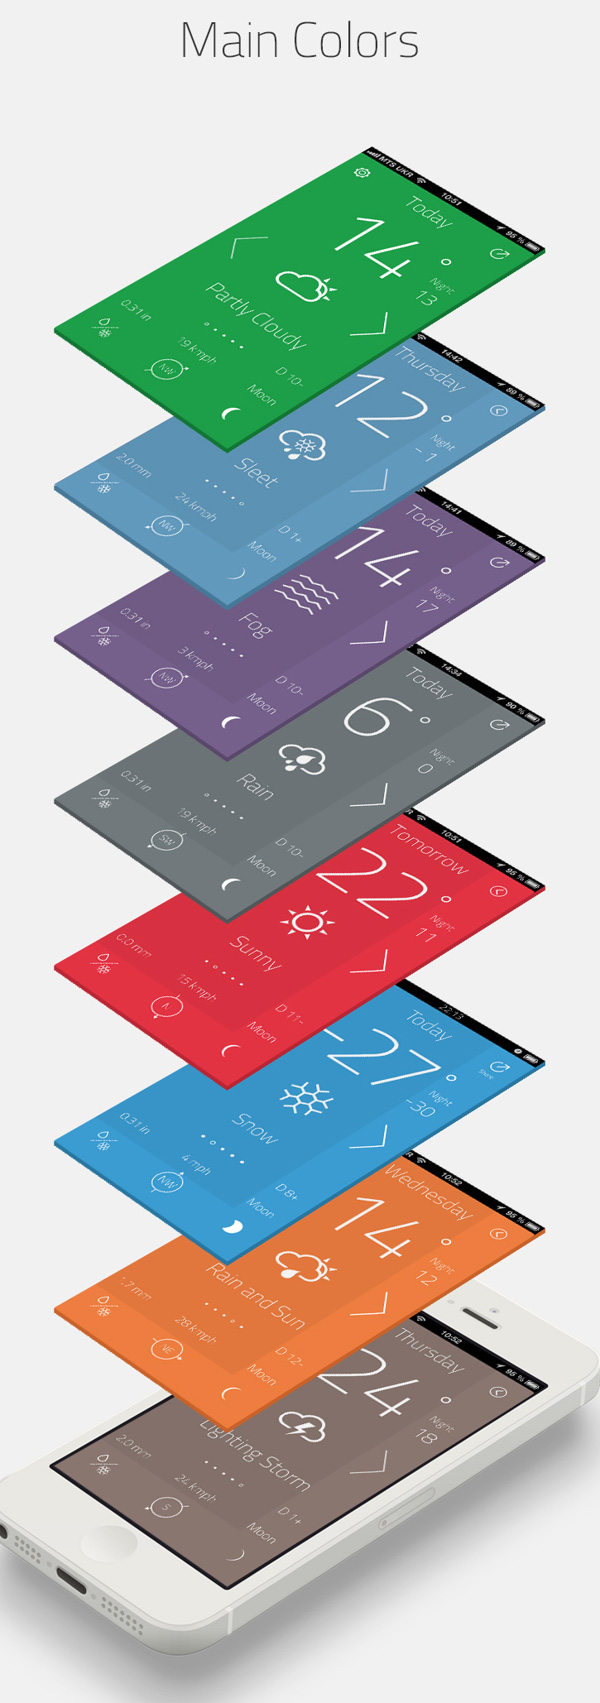 8.Mobile App Design Inspiration – Outside The Window